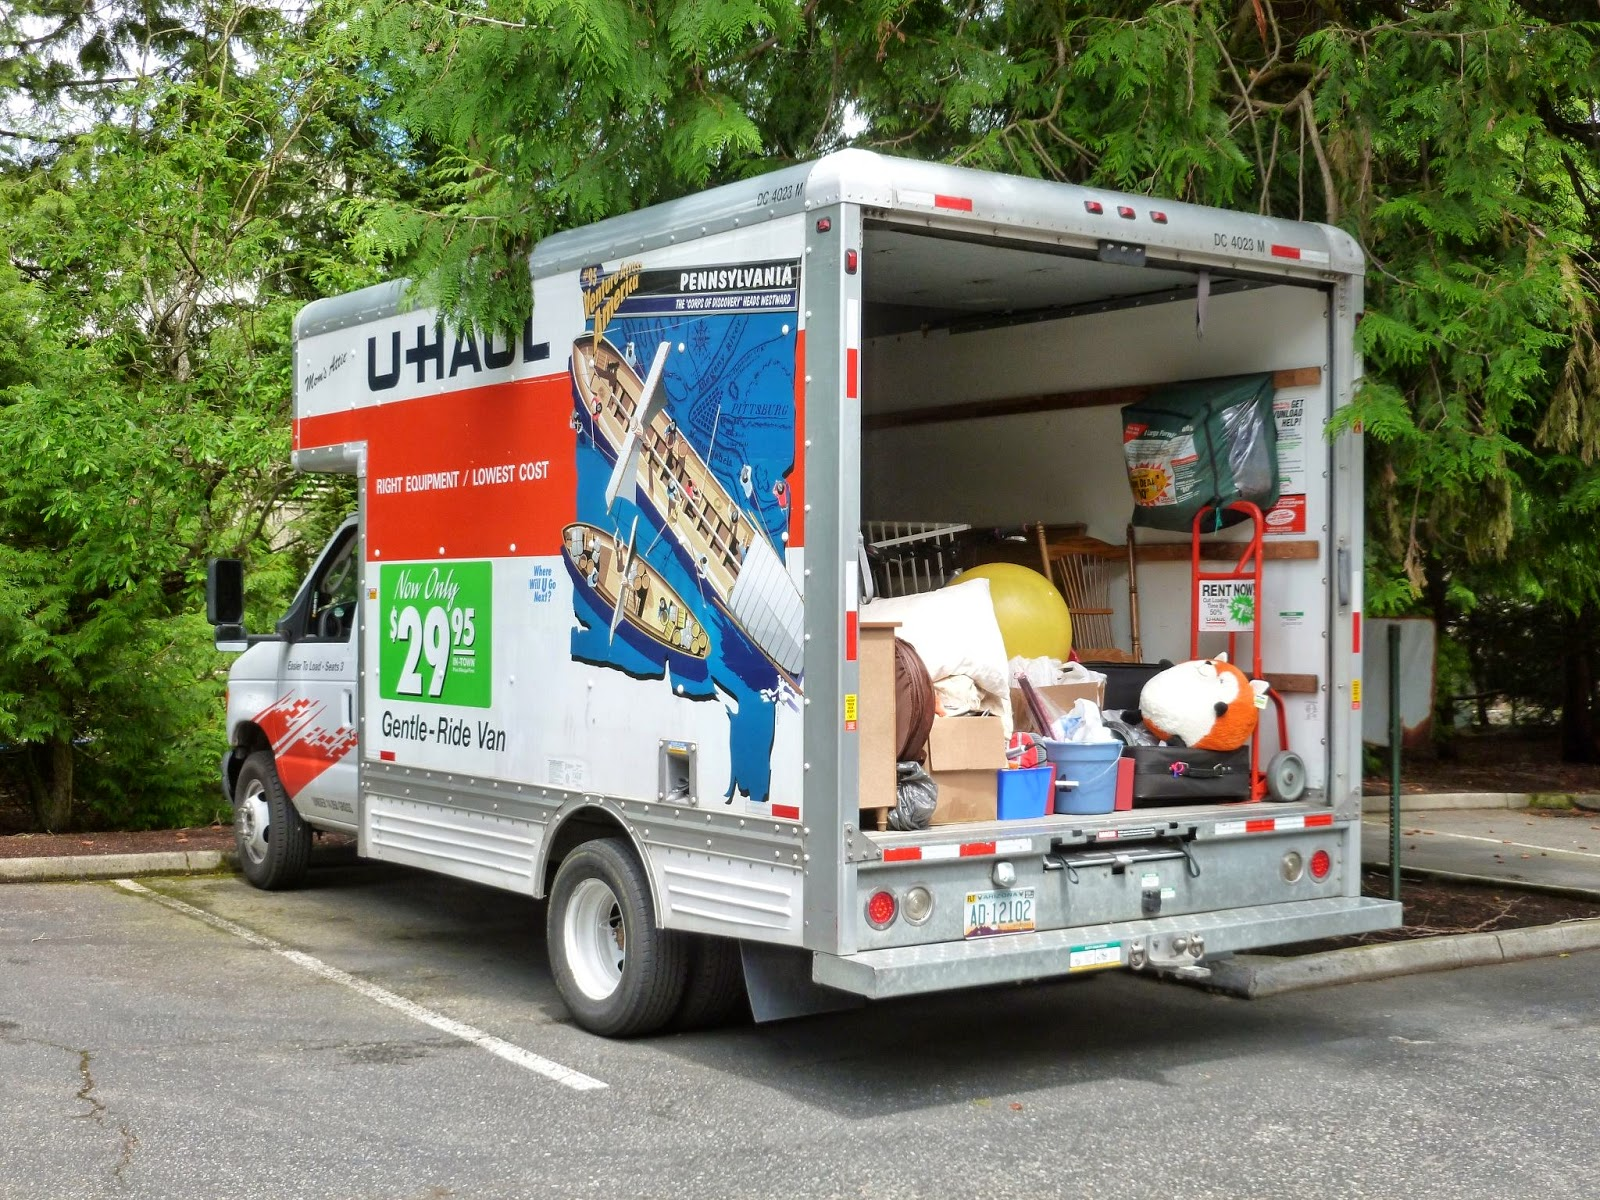 Ready to move into a CubeSmart storage unit, but not sure how you'll get everything there? Take advantage of our Moving Truck Offers, including a Free Local Moving Truck for up to 4 hours, a Free One- or Two-Hour Move at select locations, or even a Free Moving Truck and Driver for customers of select New York City locations!